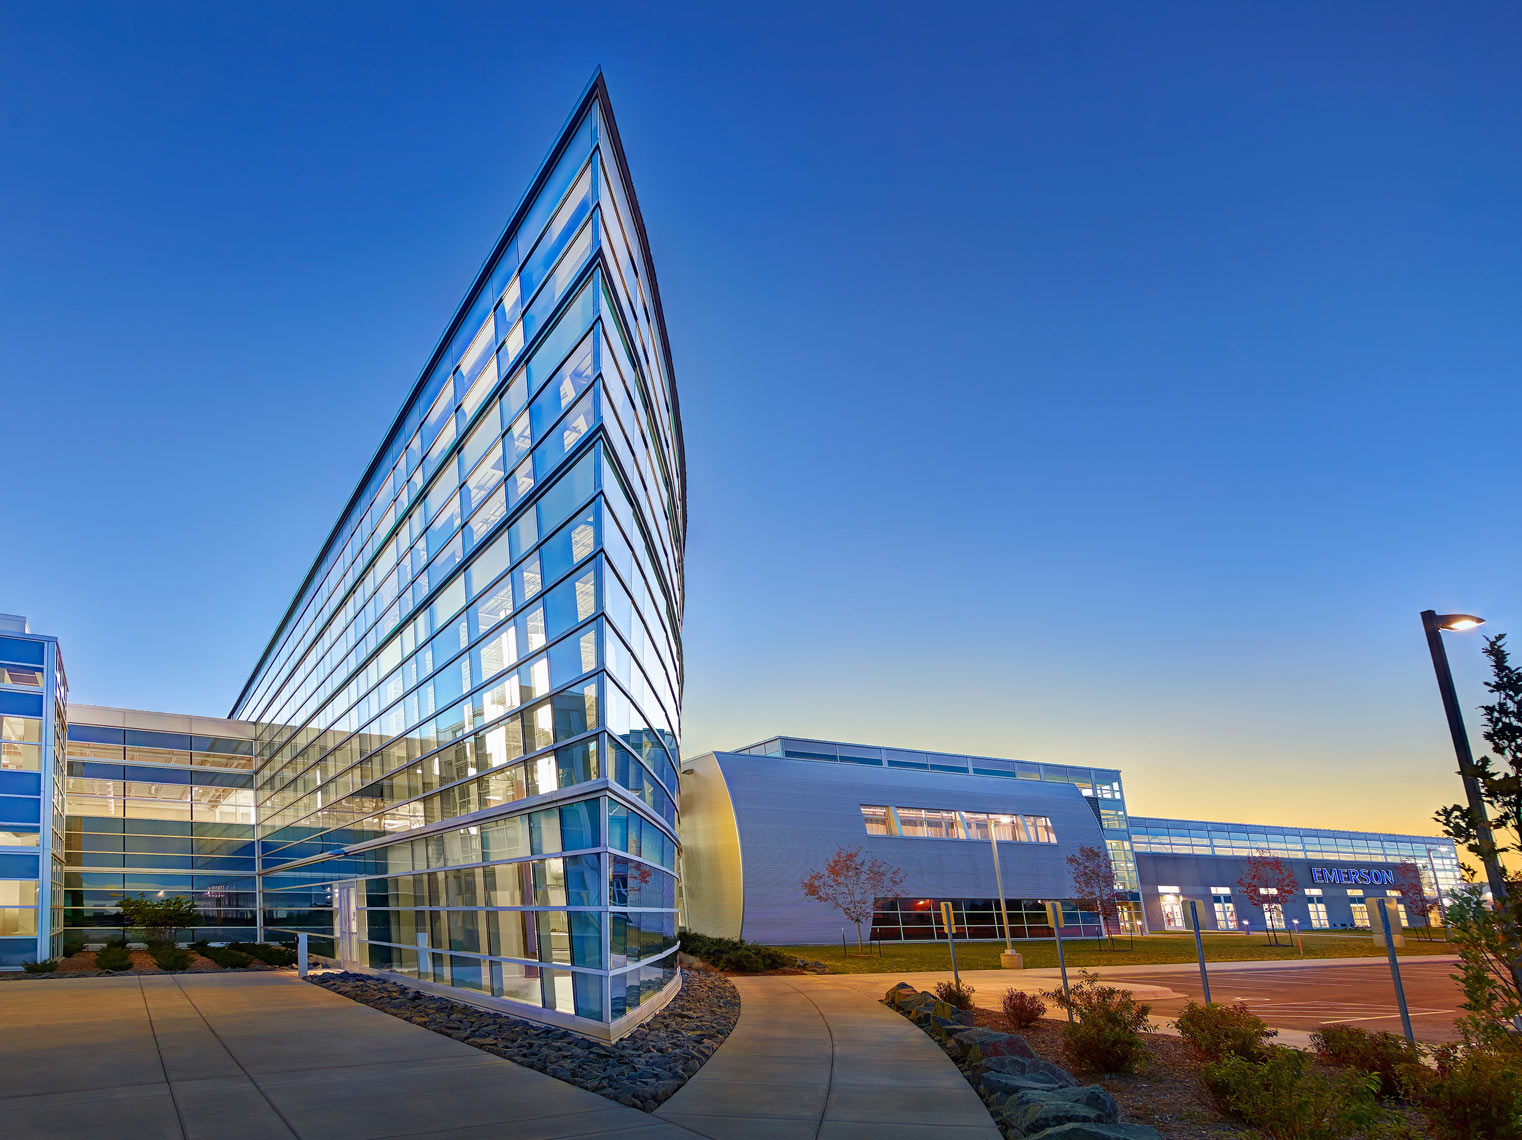 Emerson Corp./The large angled glass entry/architectural photo